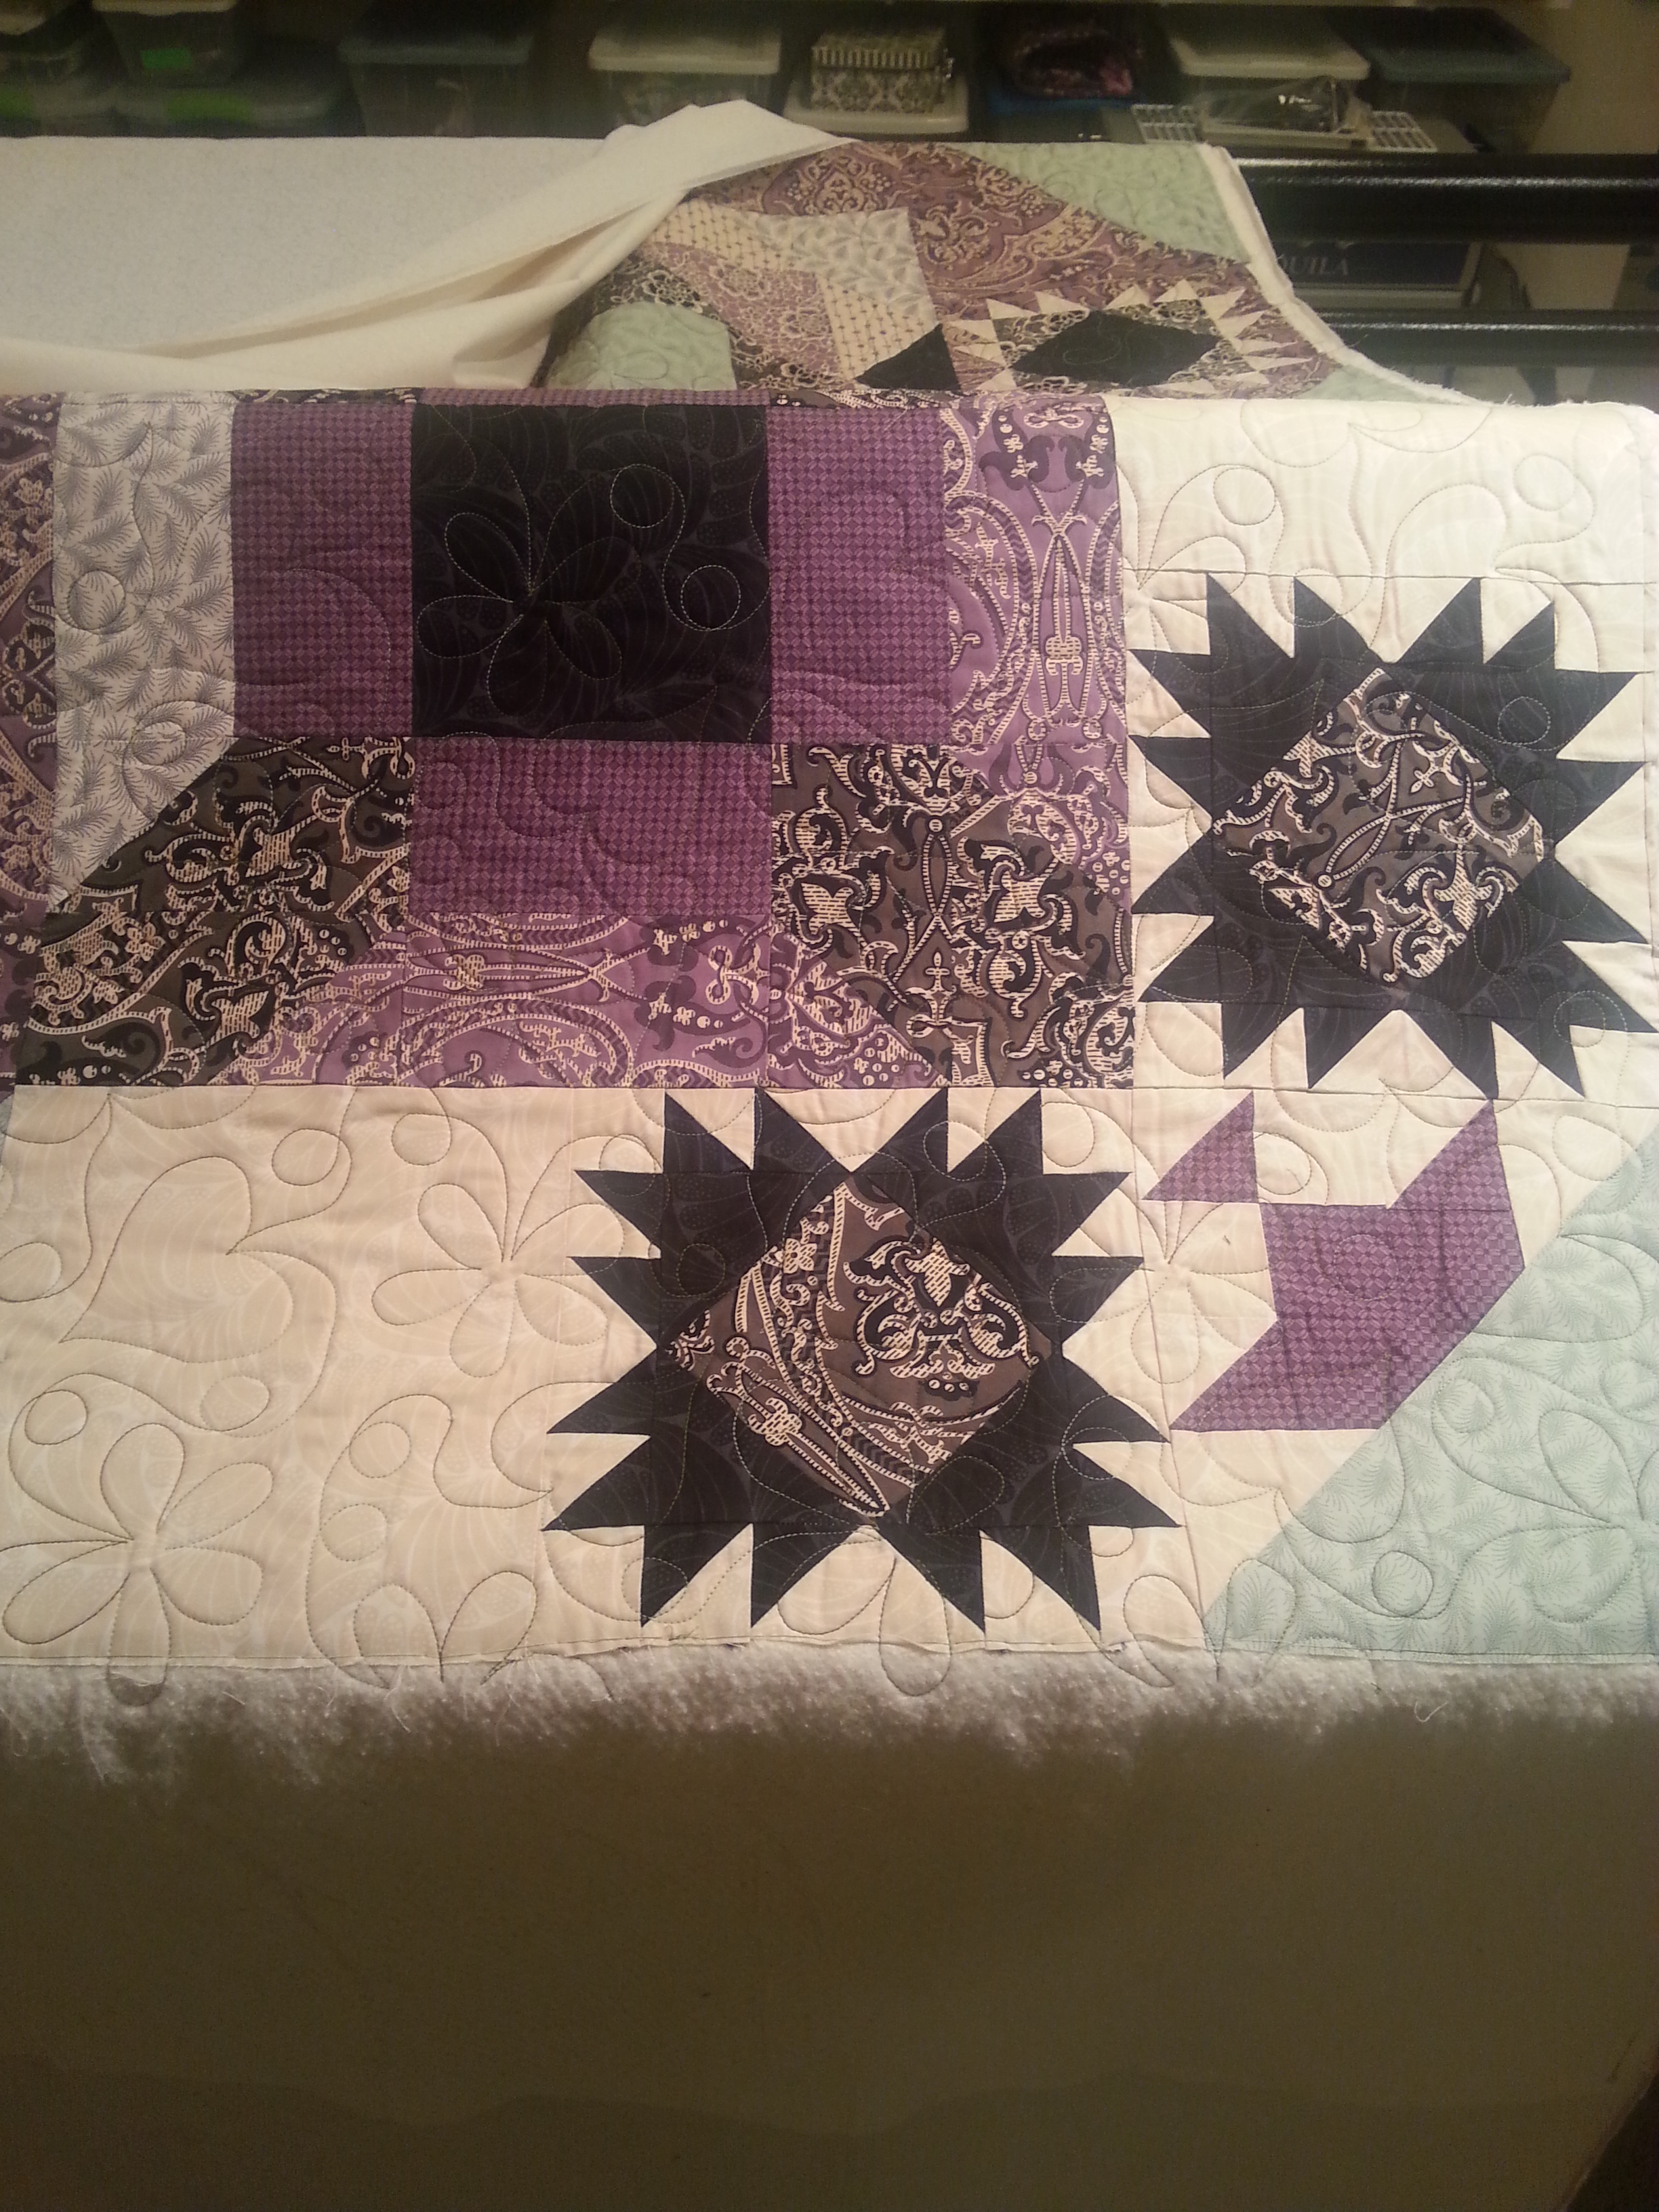 Downton Abbey Mystery Quilt 2014wandalandquilts Making Memories